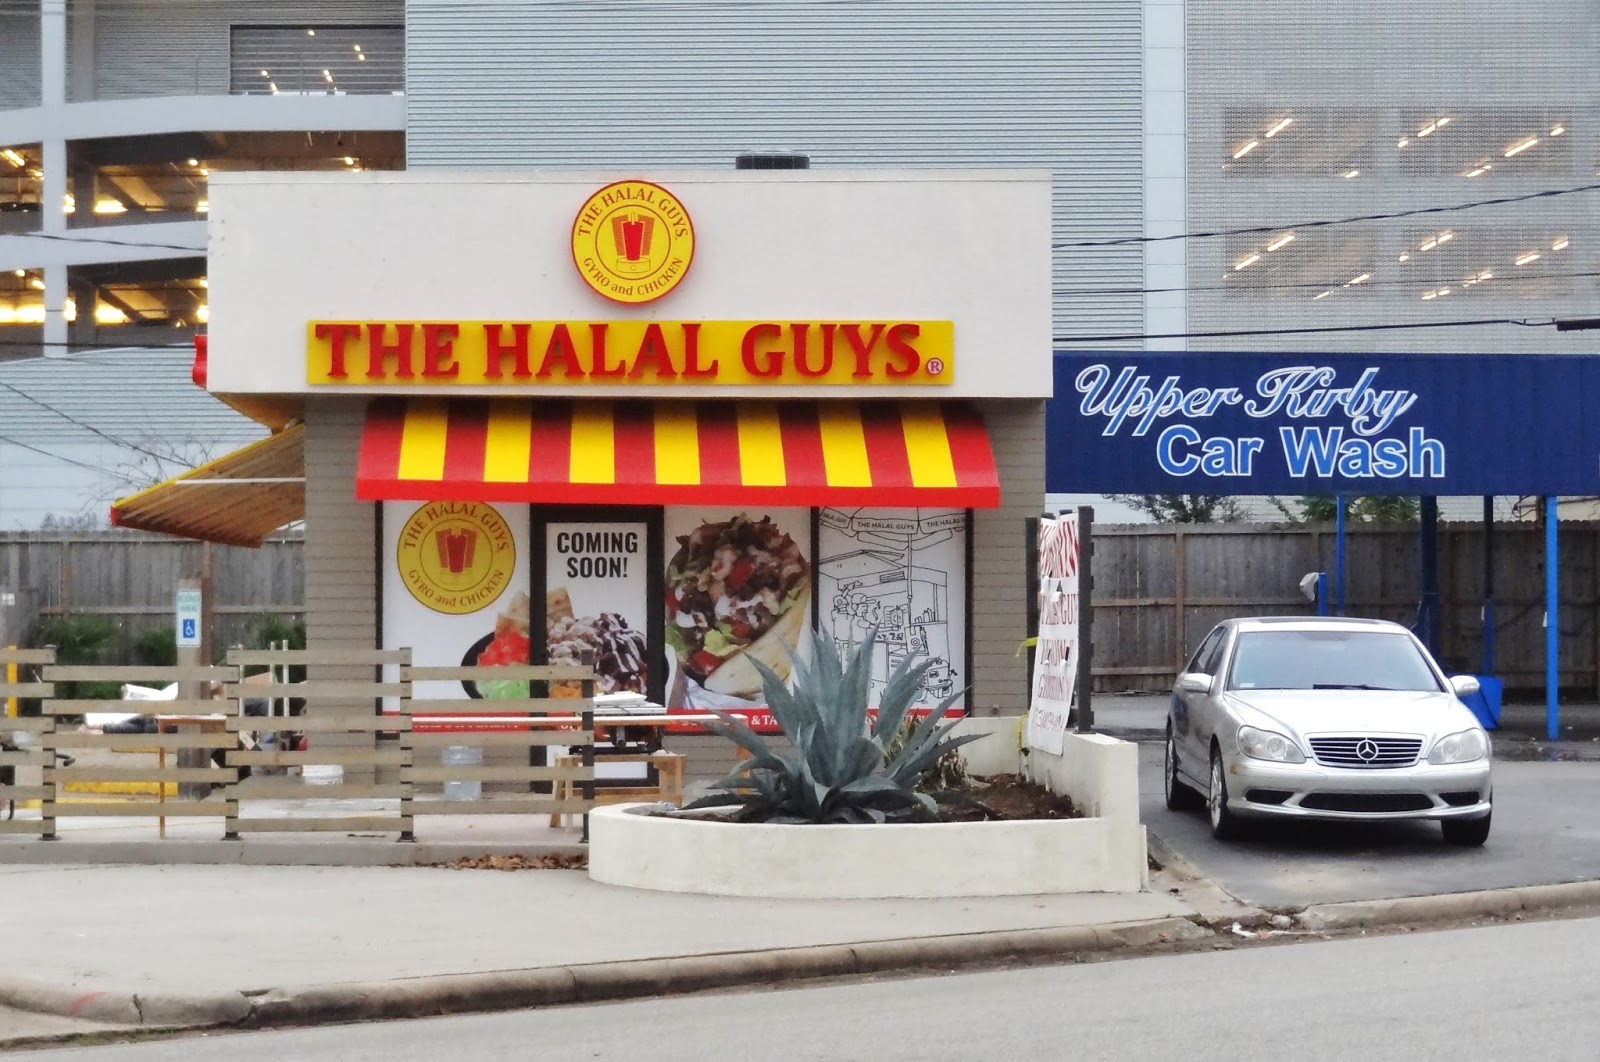 Houston Streetwise The Halal Guys logo and signage is up